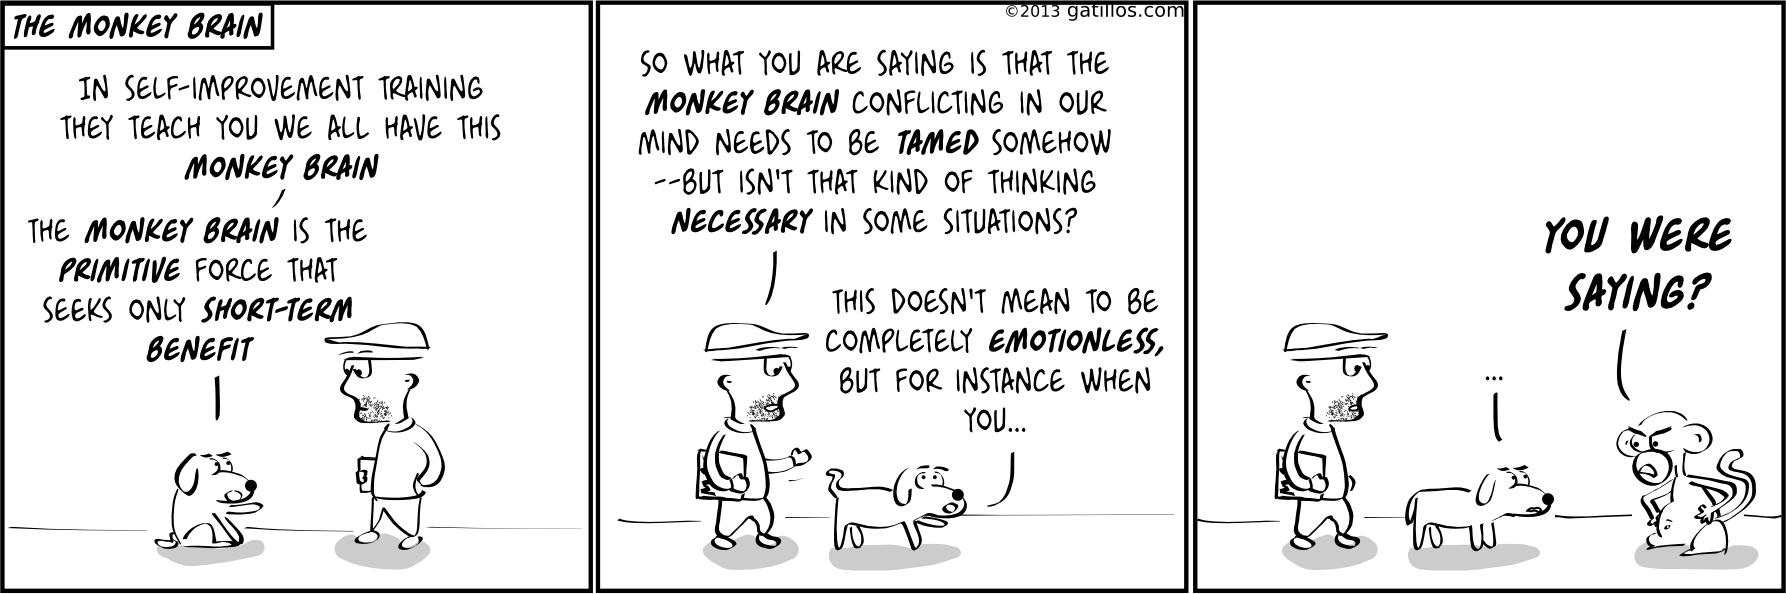 Paul the innovator (69): The monkey brain